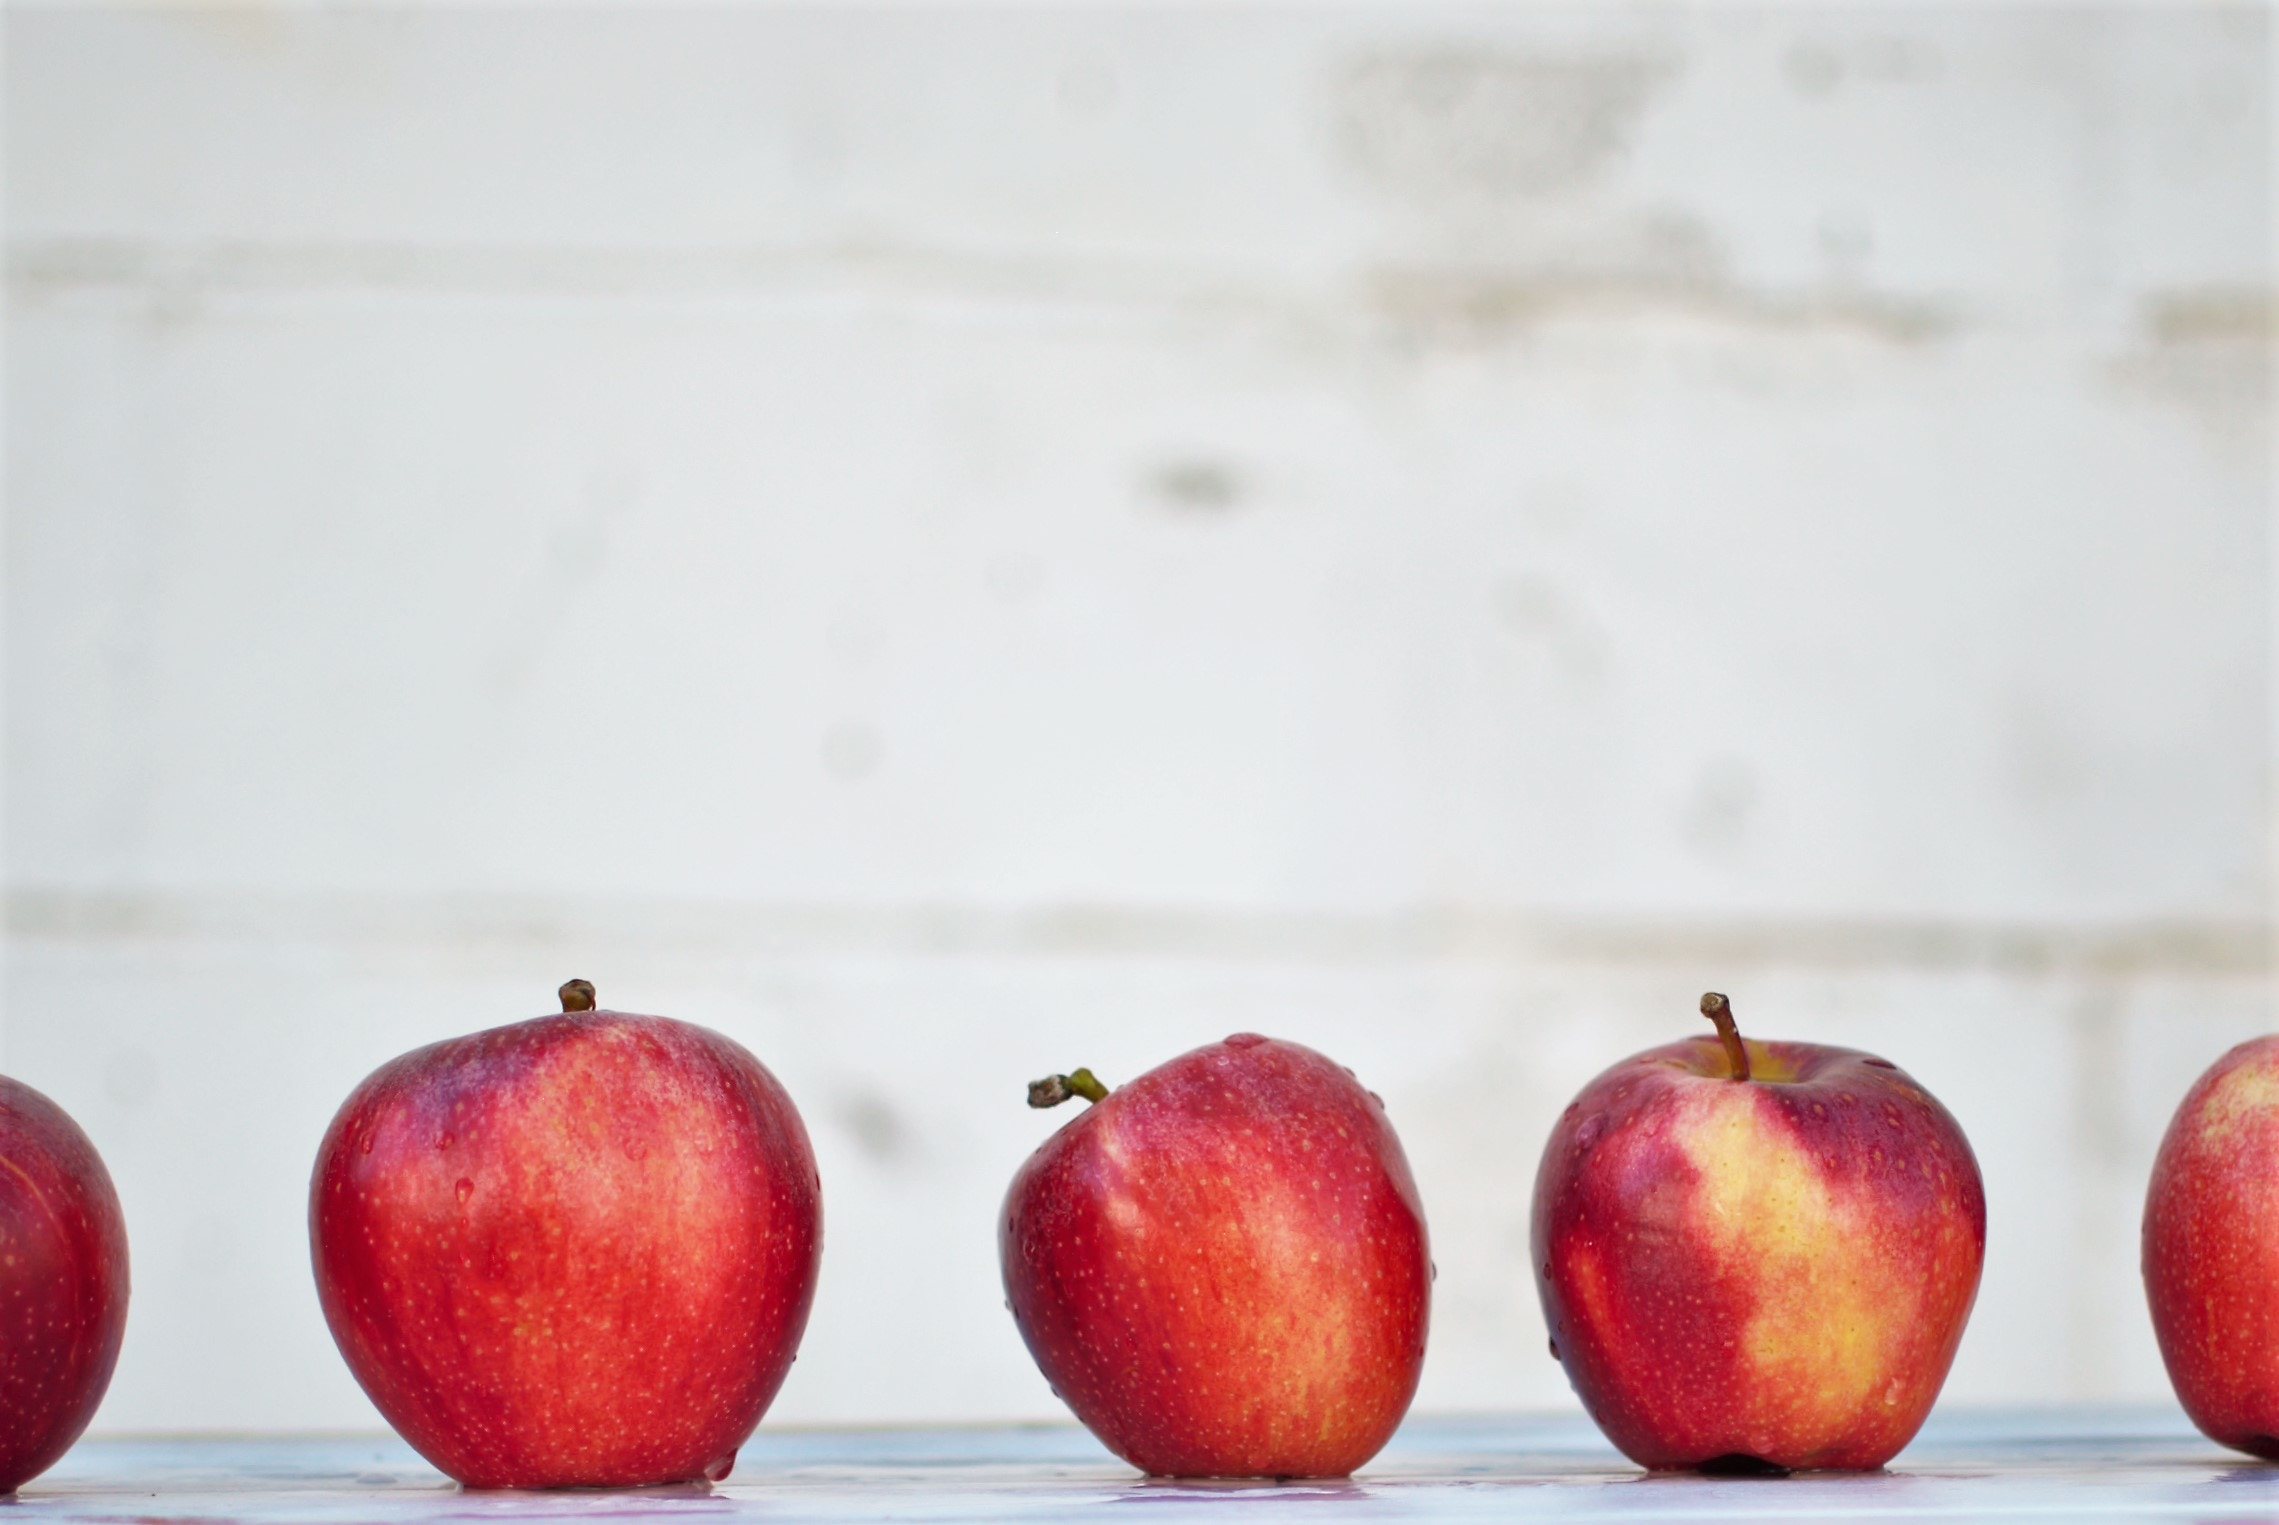 Which is the perfect apple?